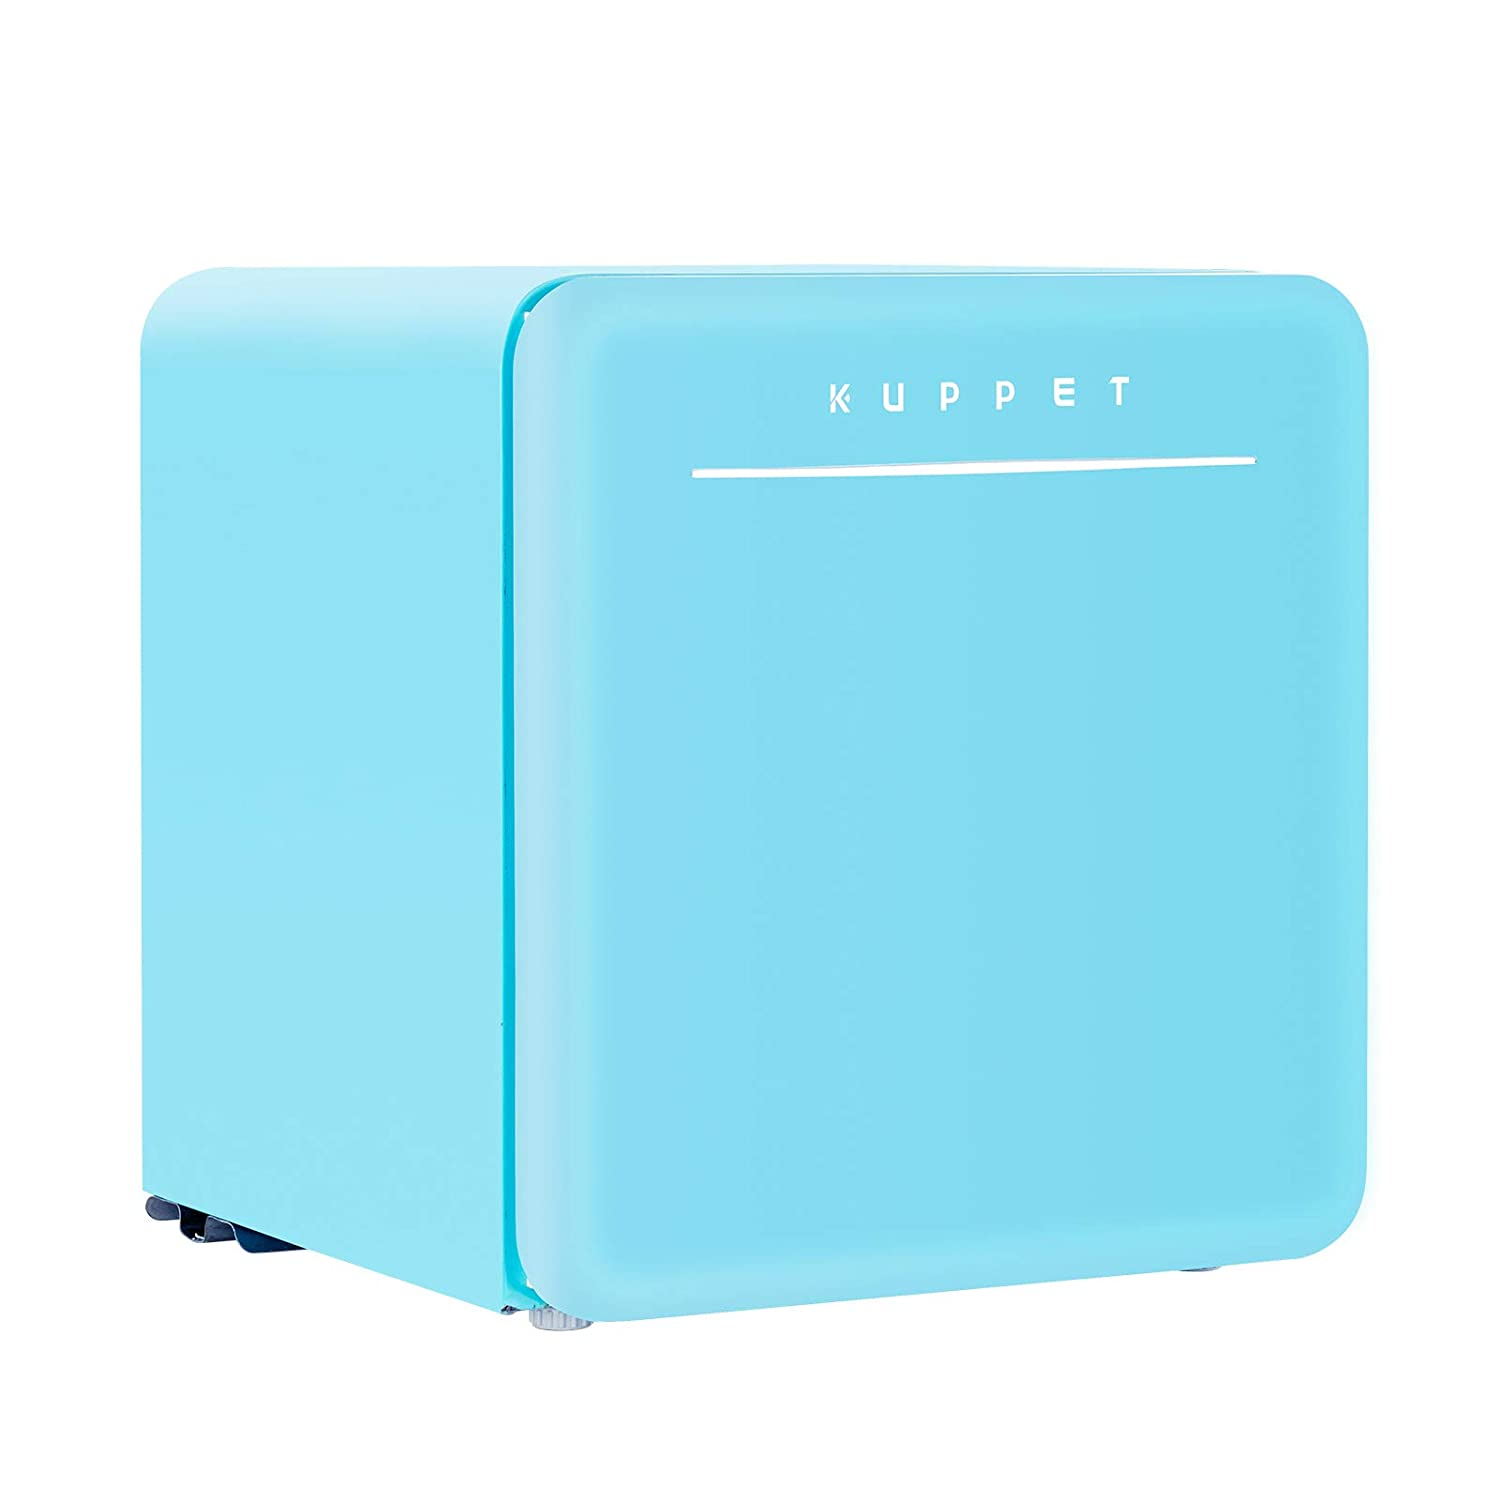 KUPPET Classic Retro Compact Refrigerator Single Door, Mini Fridge with Freezer, Small Drink Chiller for Home,Office,Dorm, Small beauty cosmetics Skin care mask refrigerated for home,1.6 Cu.Ft Blue